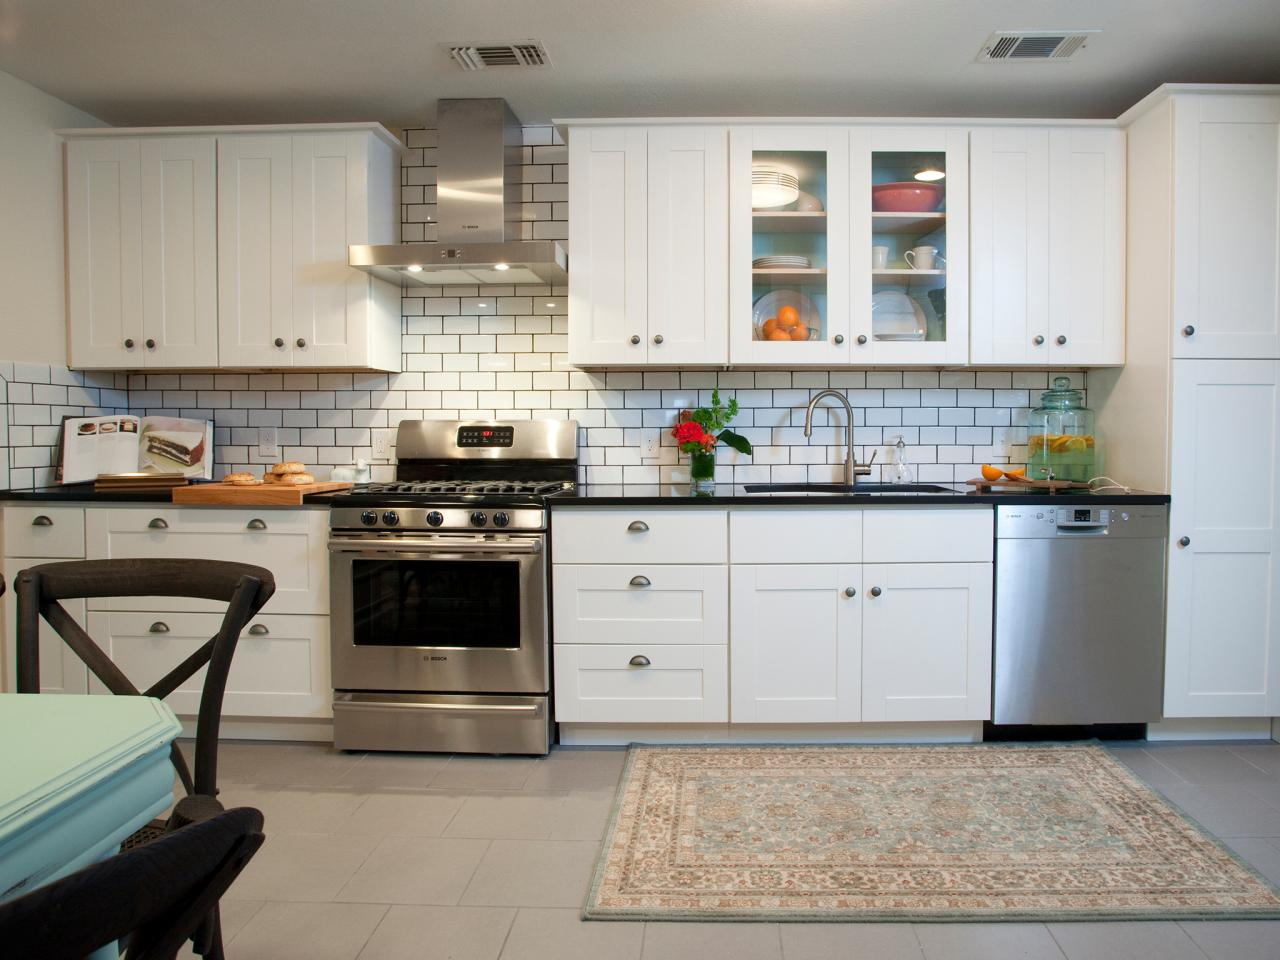 Beau Classic White Subway Tile Extended Backsplash Combined With White Cabinets  With Glass Door